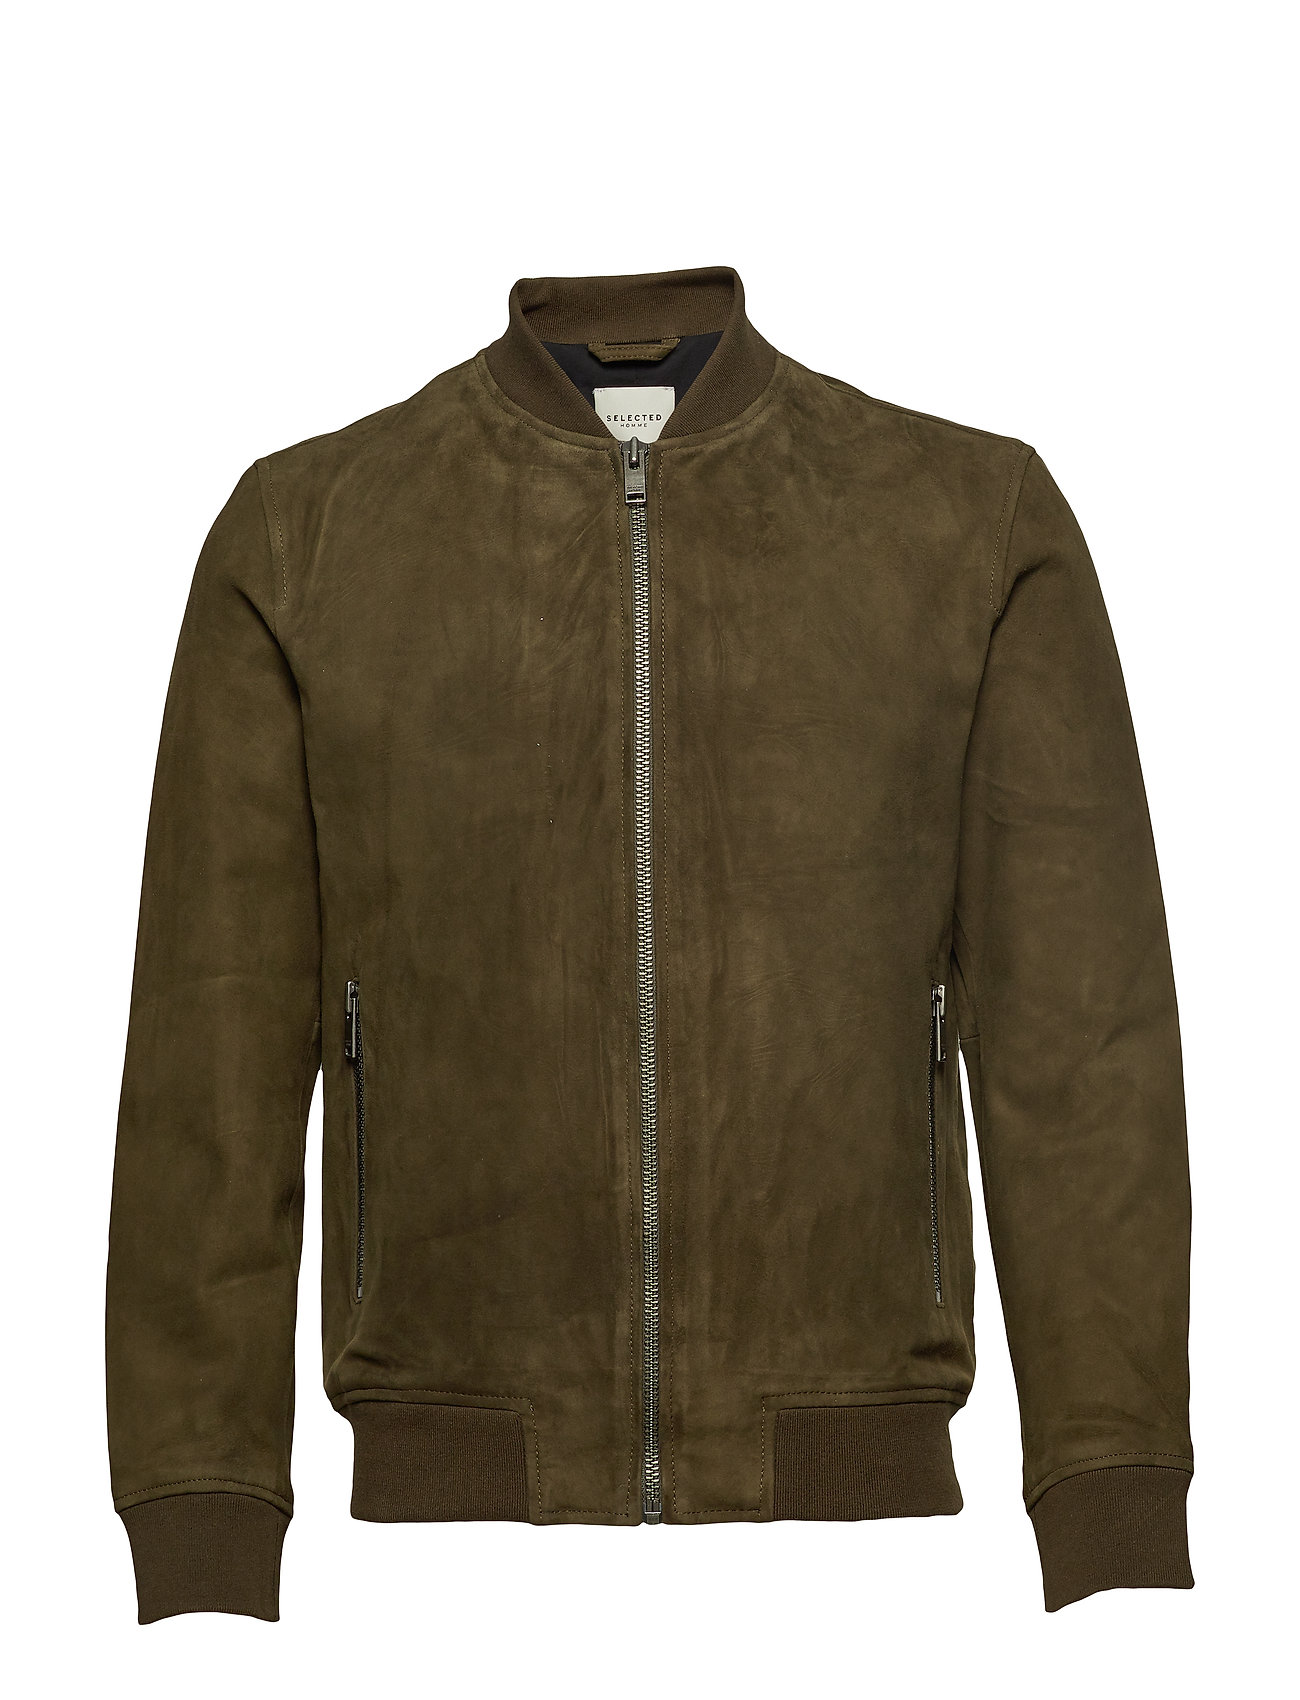 Selected Homme SLH B-01 BOMBER SUEDE JKT W - ROSIN